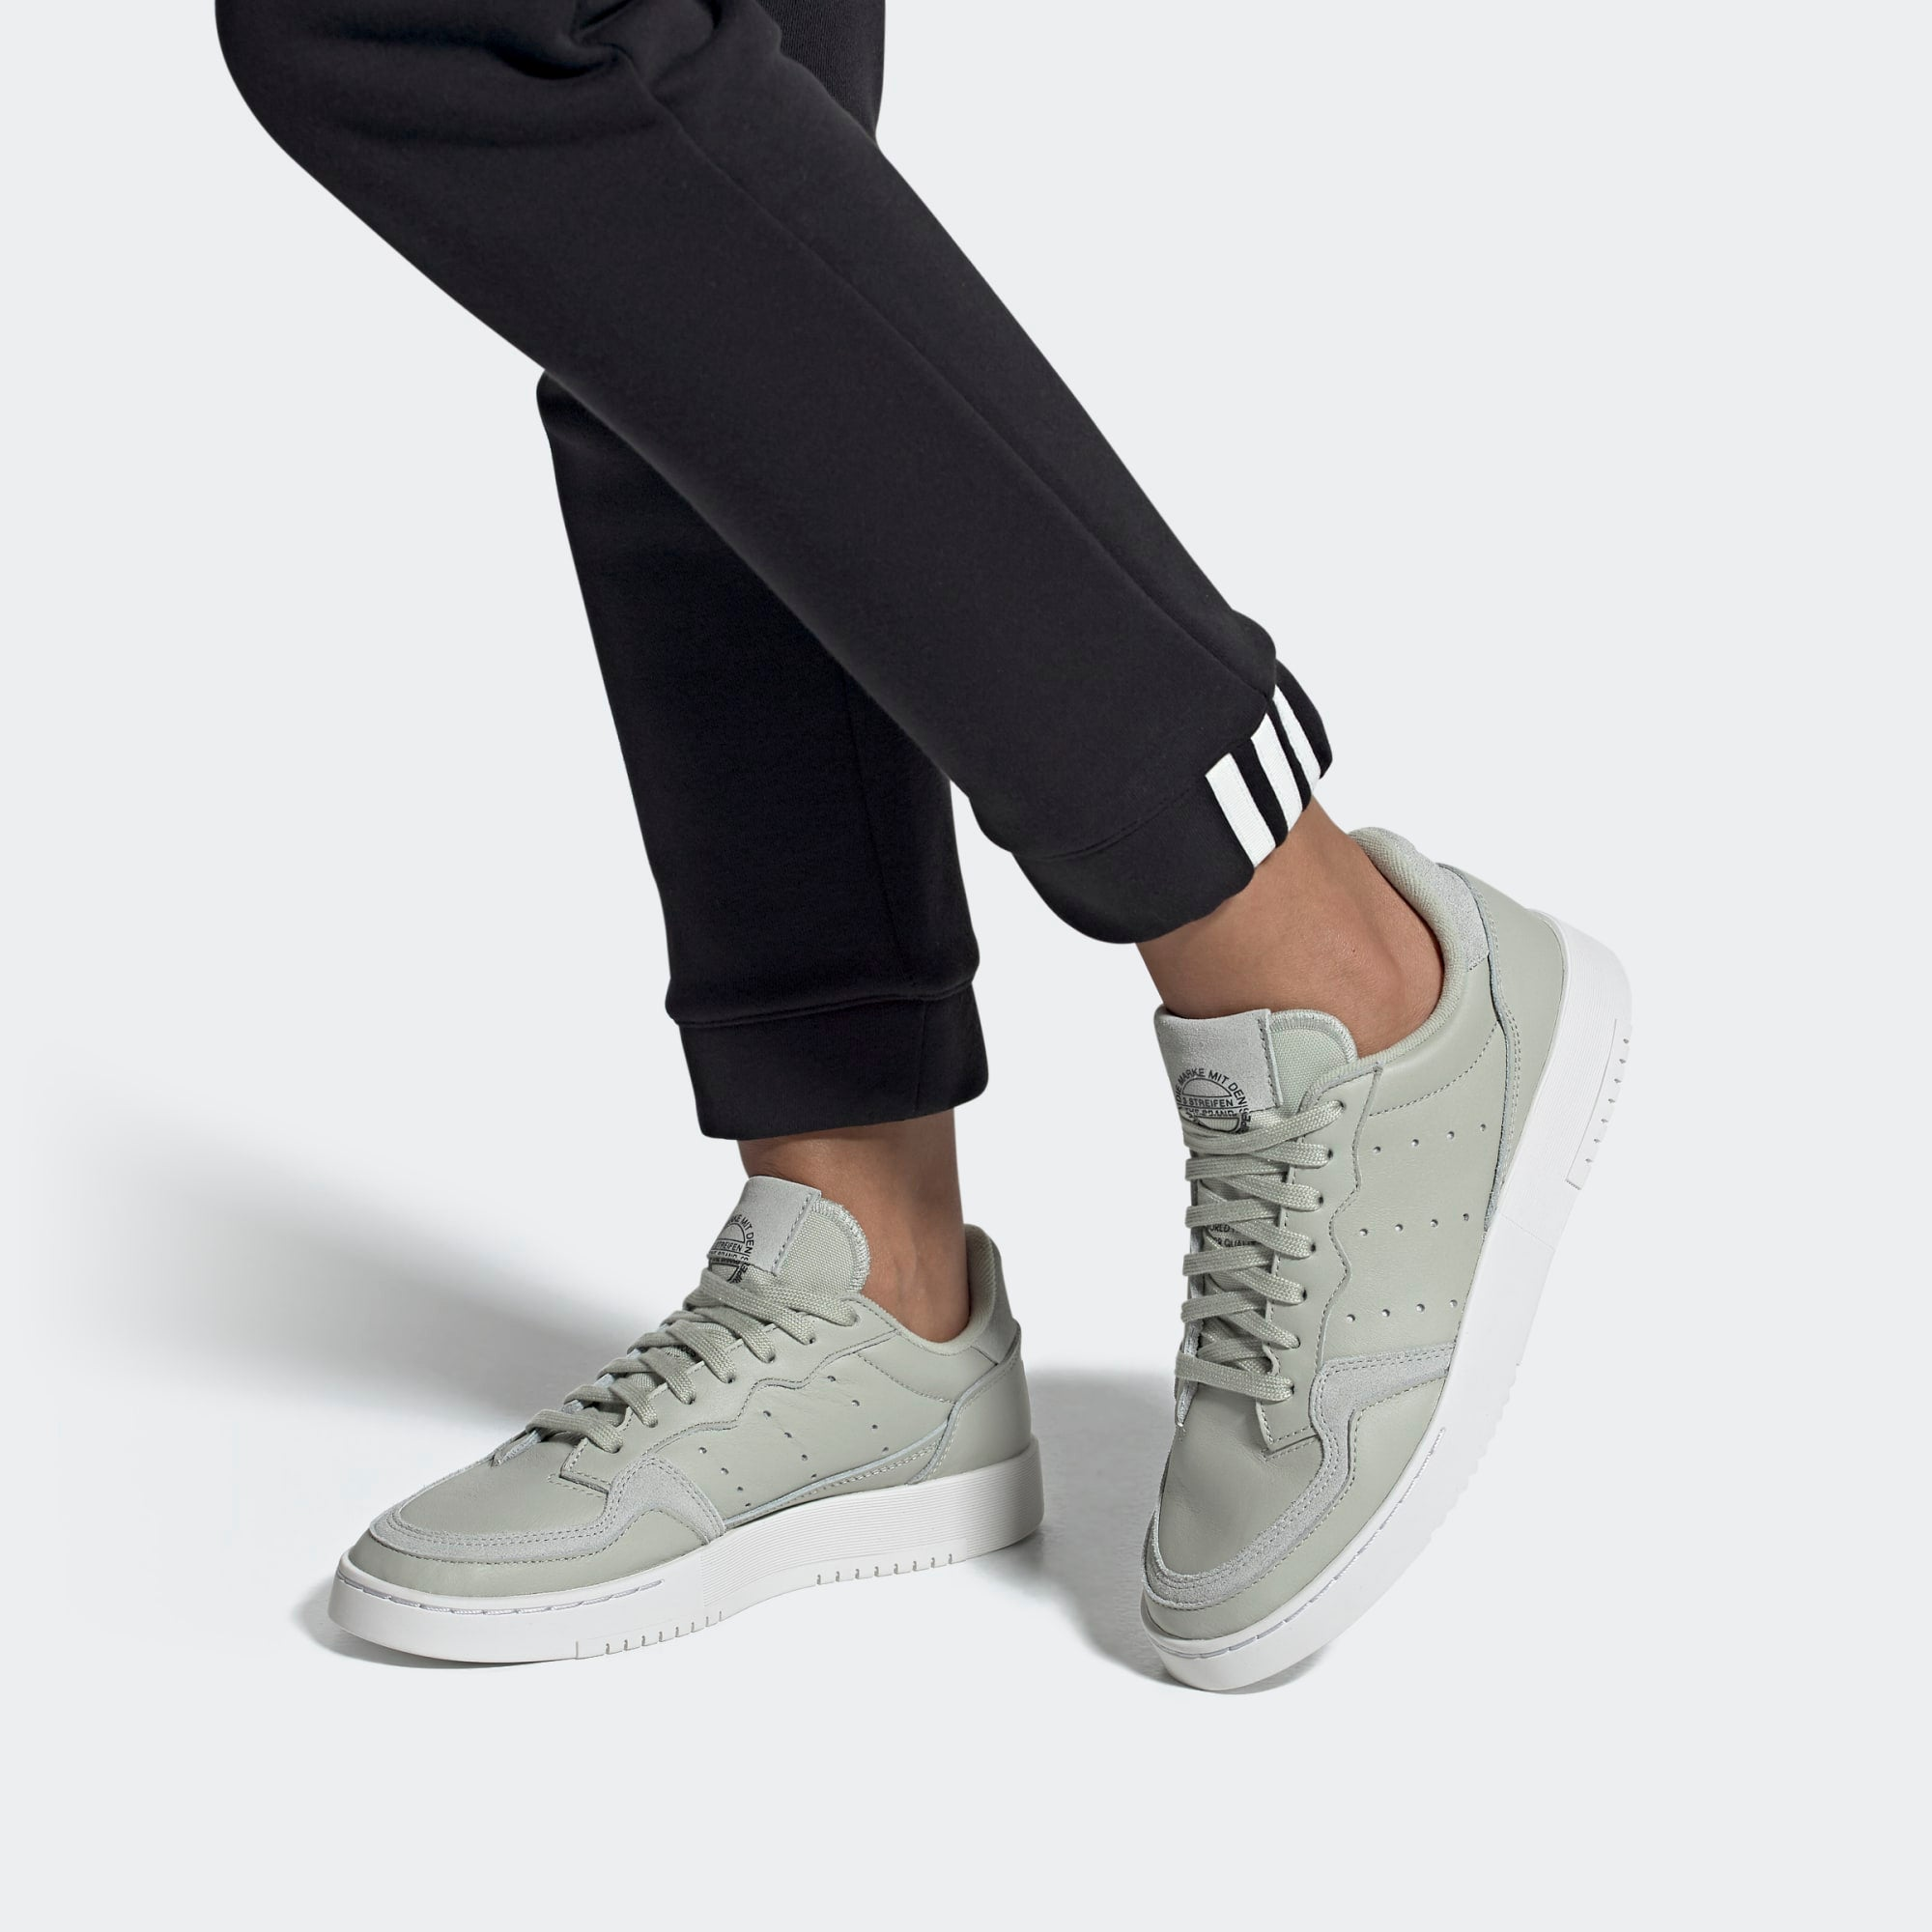 adidas Supercourt Shoes Ash Silver EE6045 | Chicago City Sports